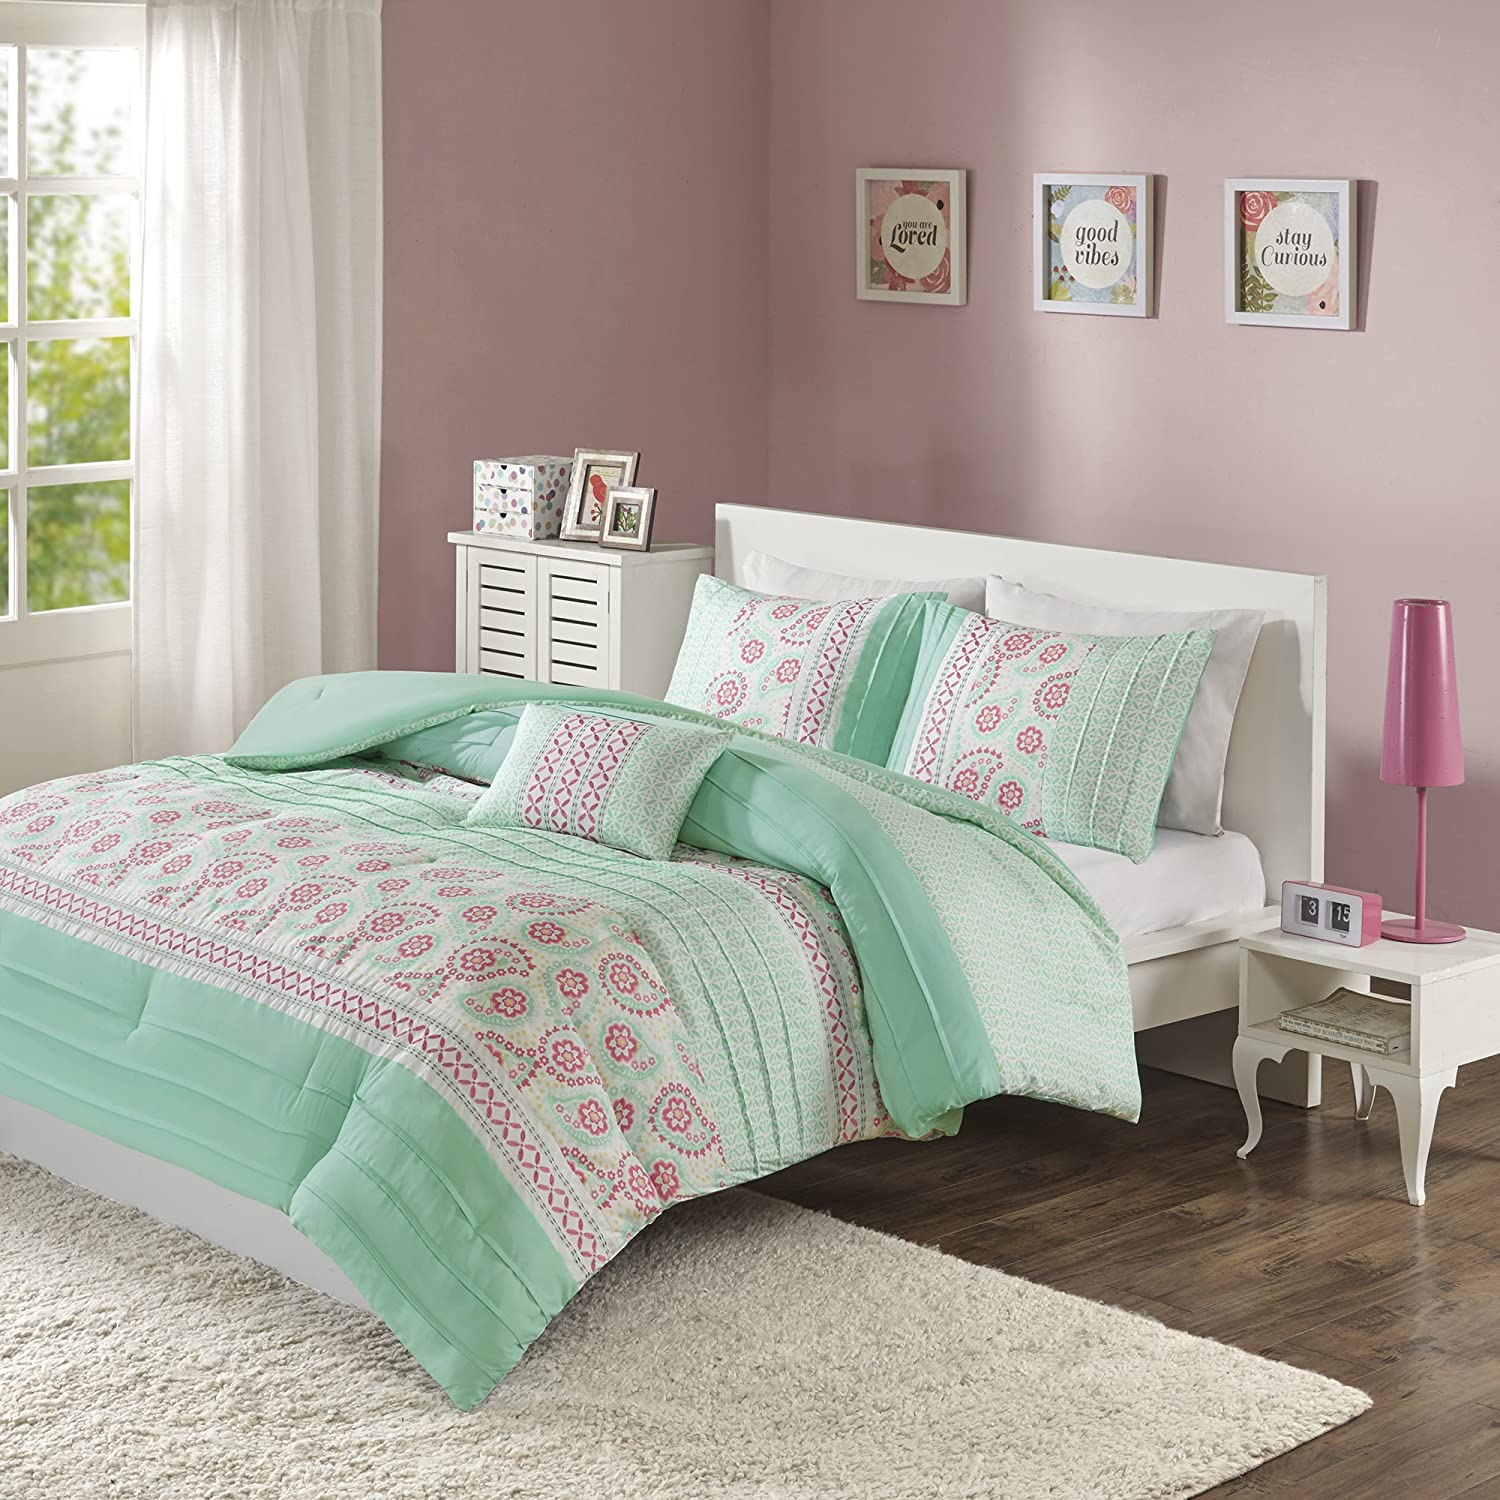 Mi-Zone Suzette Comforter Set Twin/Twin Xl Size - Seafoam Green, Pleated Floral Paisley – 3 Piece Bed Sets – Ultra Soft Microfiber Teen Bedding For Girls Bedroom